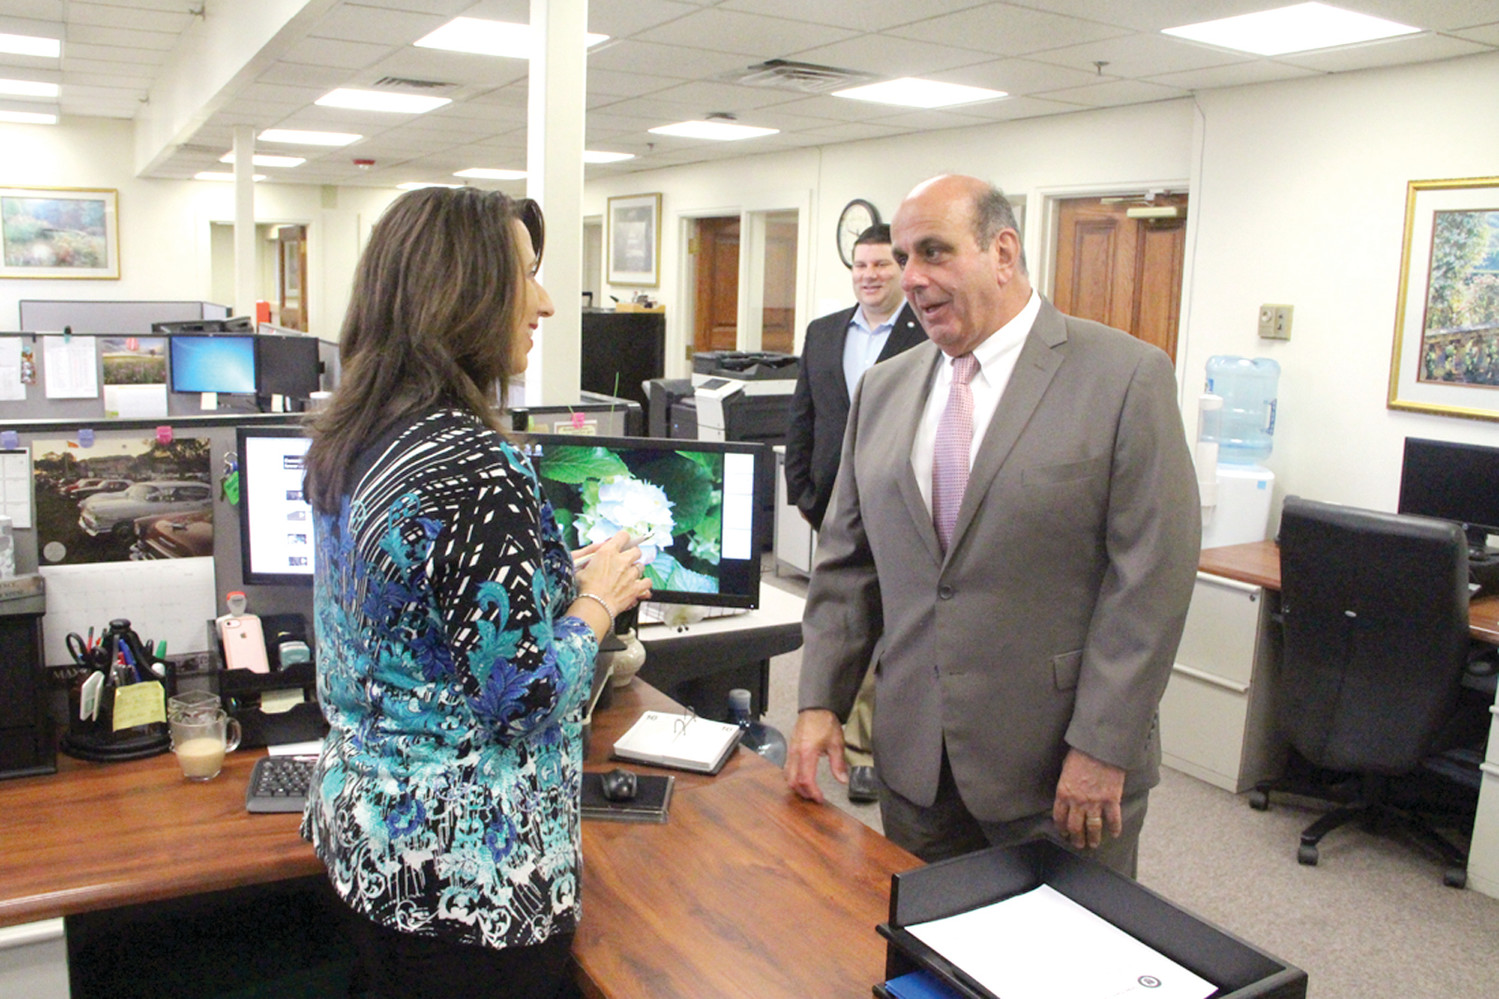 MAKING THE ROUNDS: Acting Mayor Joseph Solomon was joined by Ward 7 Councilman Steve McAllister as he met city employees yesterday. Here he talks with Margie White in the finance department.